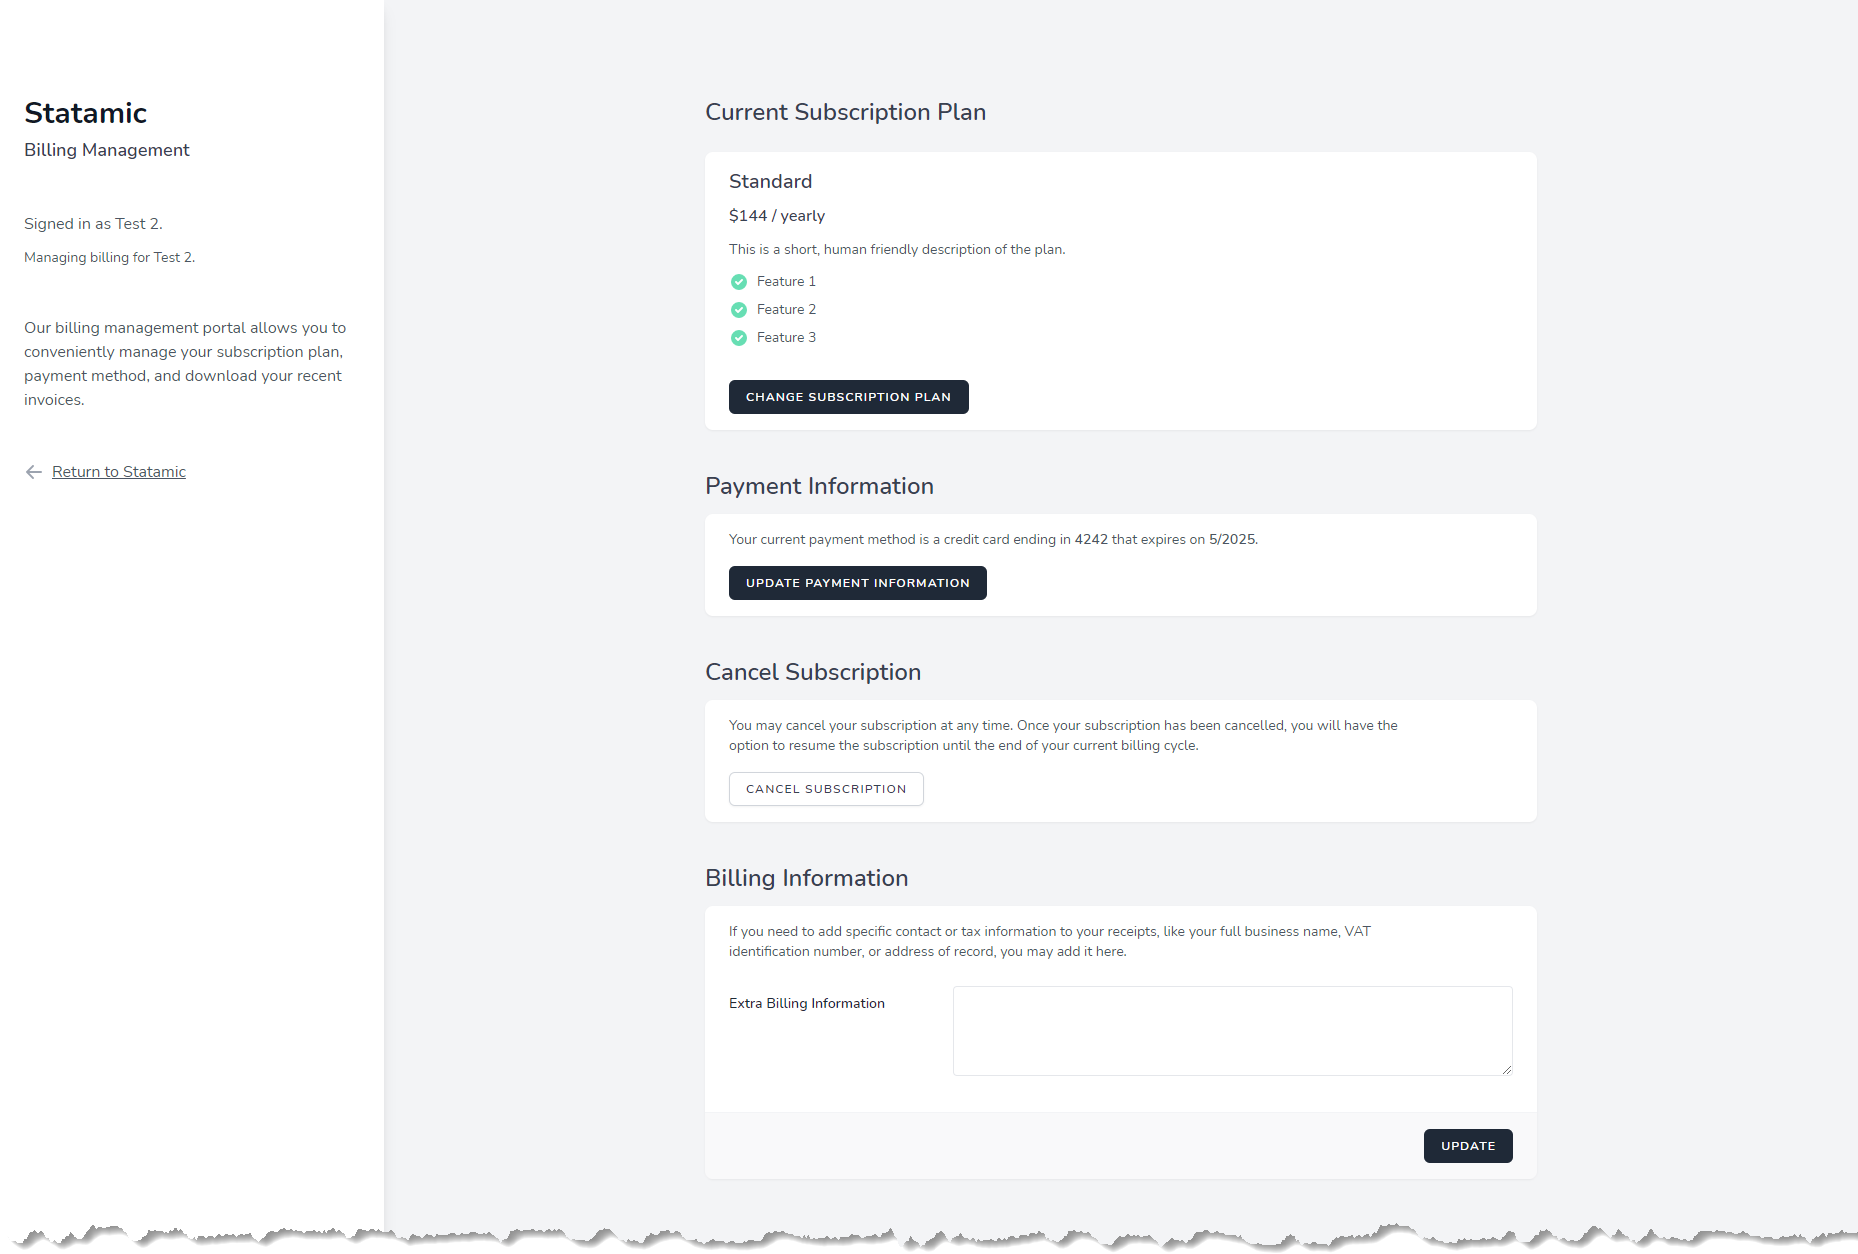 Statamic and Spark Test Subscription